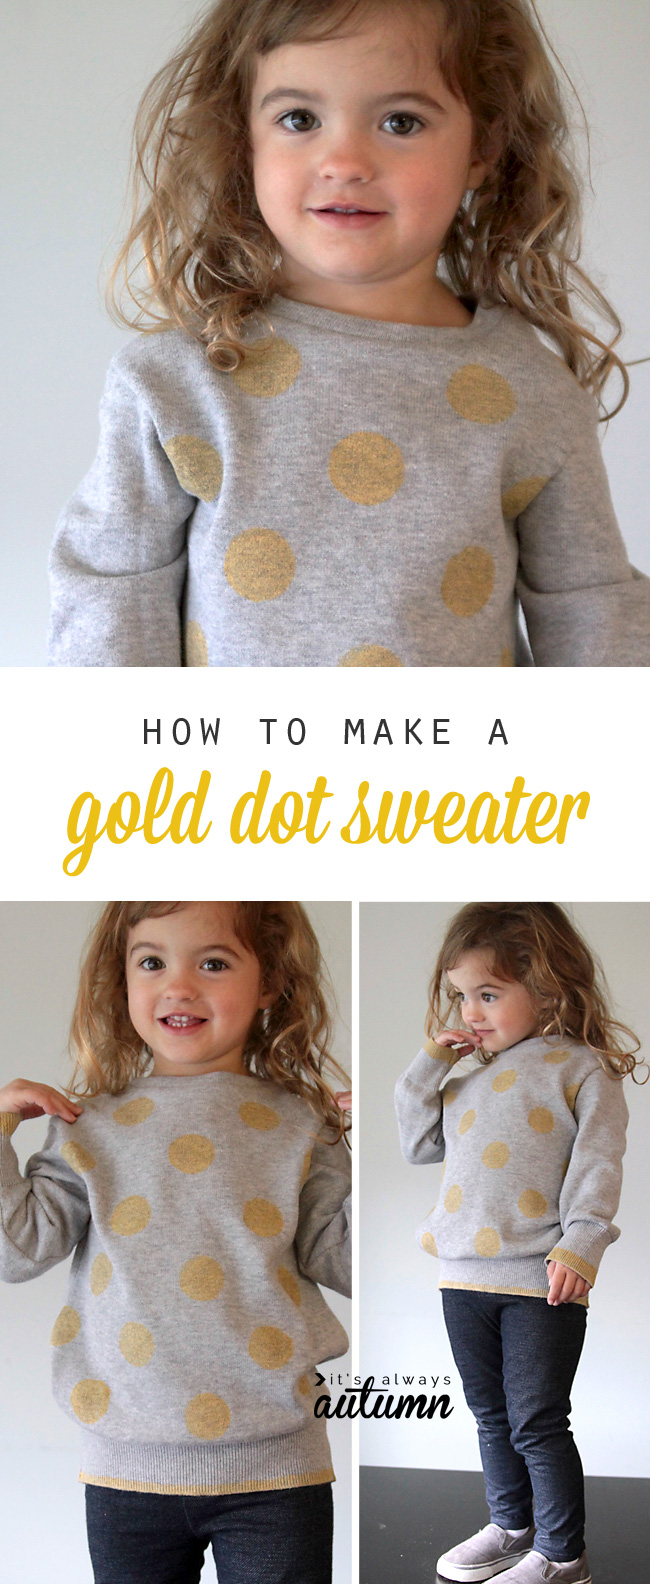 I love this! Add big gold polka dots to a sweatshirt for a cute DIY little girl's top.